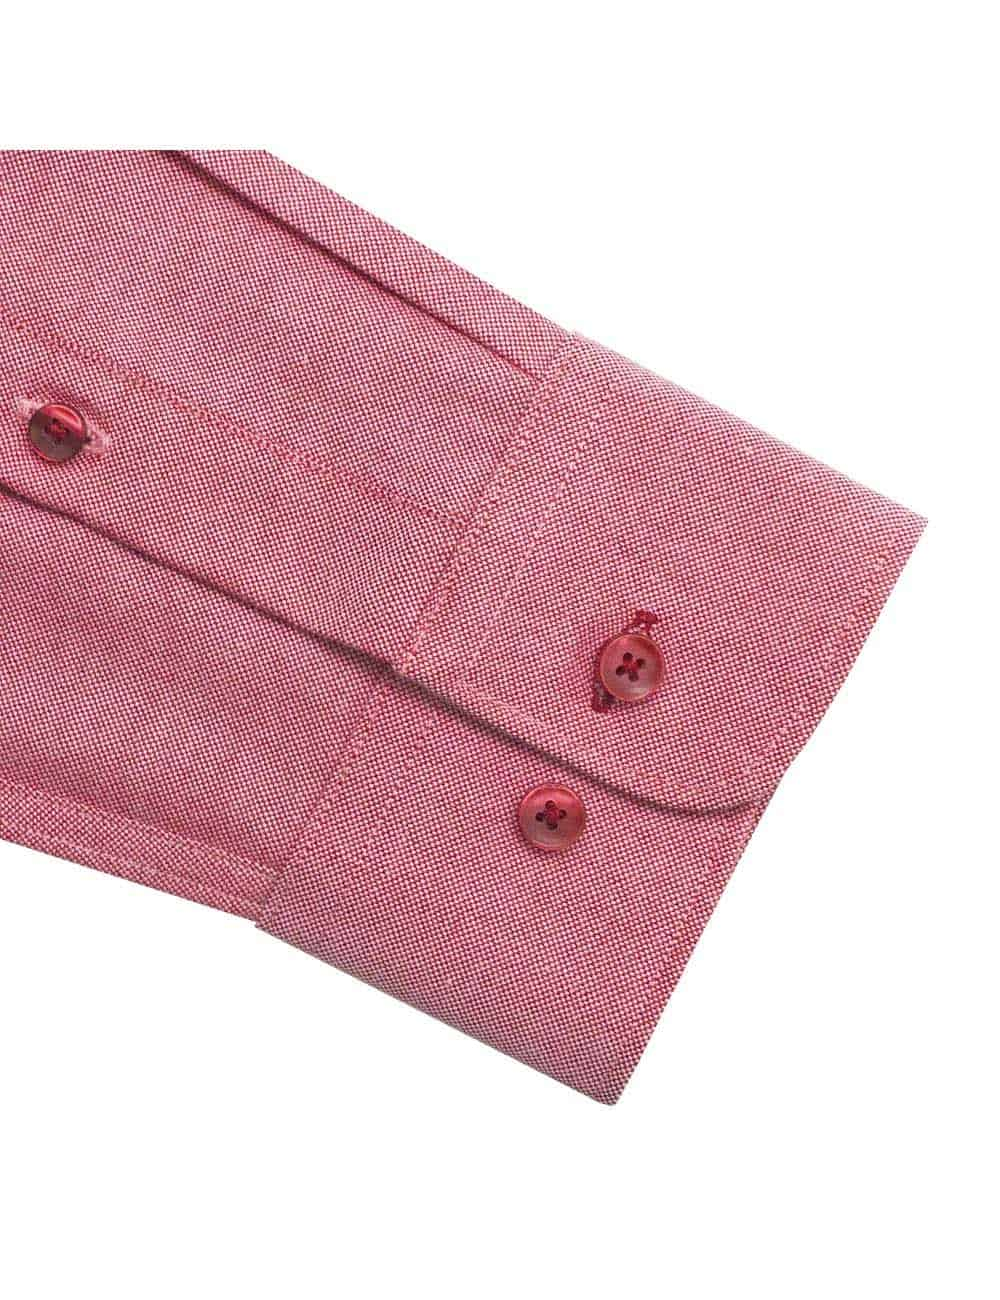 Tailored Fit Cotton Blend Wrinkle Resistant Solid Red Oxford Button Down Easy Iron Long Sleeve Single Cuff Shirt TF5B4.17